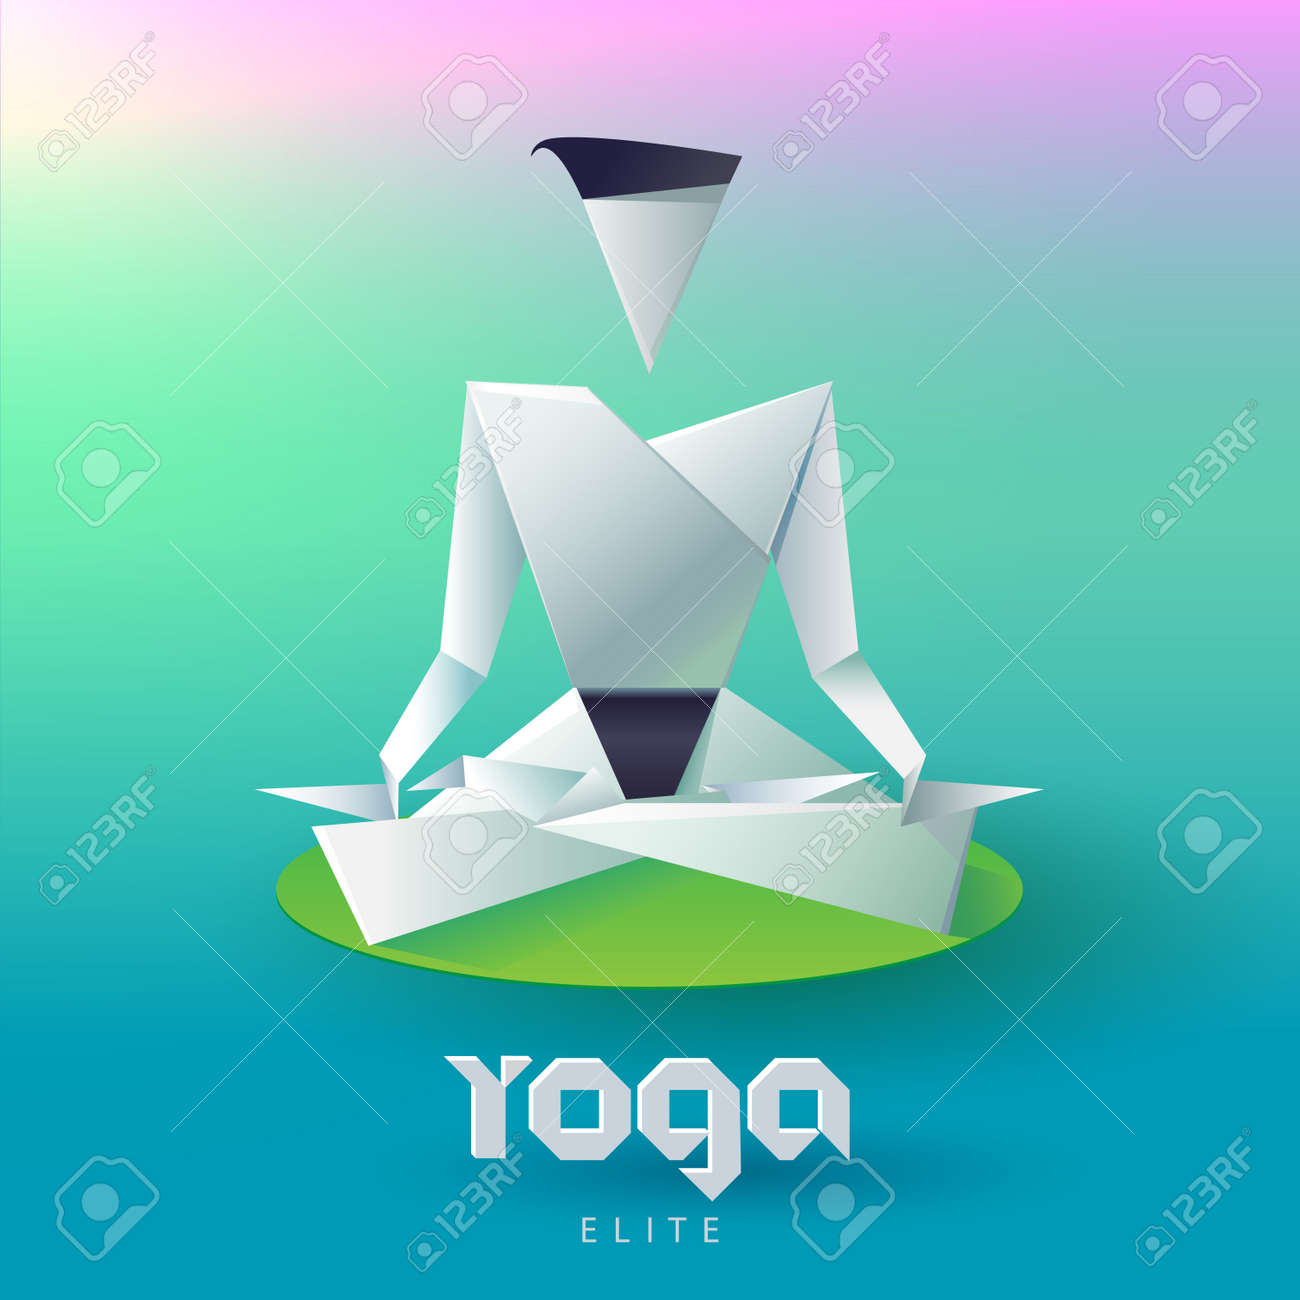 Yoga Man In The Lotus Position Form Of Origami Logo Design